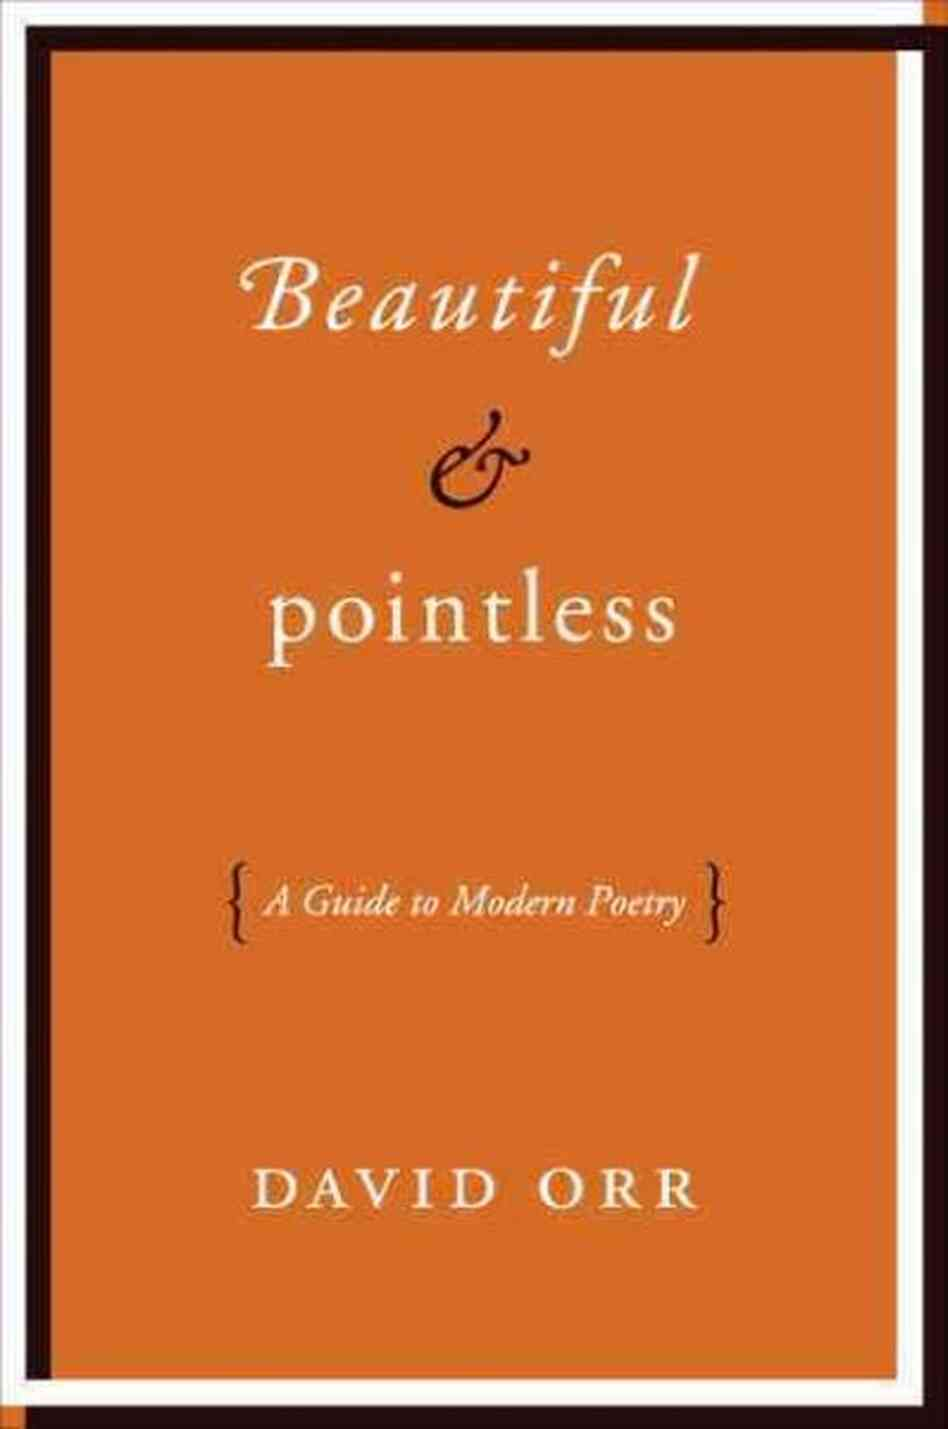 Beautiful Poetry Book Covers : Beautiful pointless npr